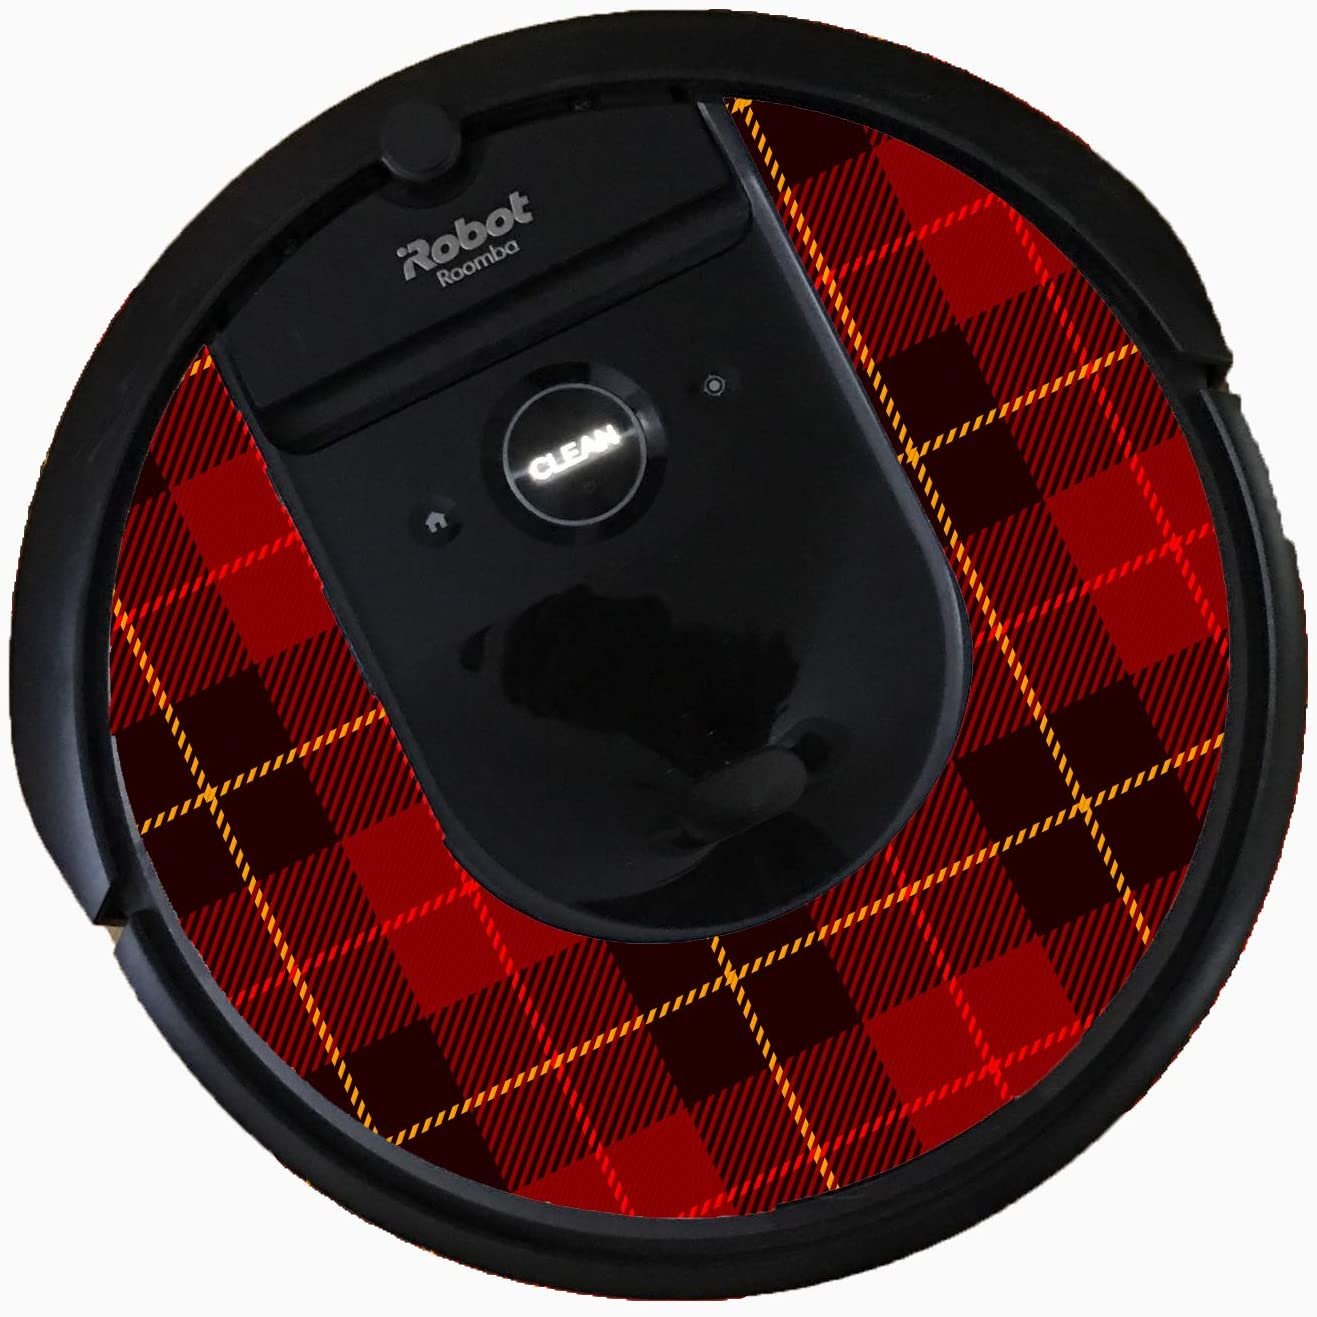 Bling for Roomba i7 Vacuums (Red Plaid)